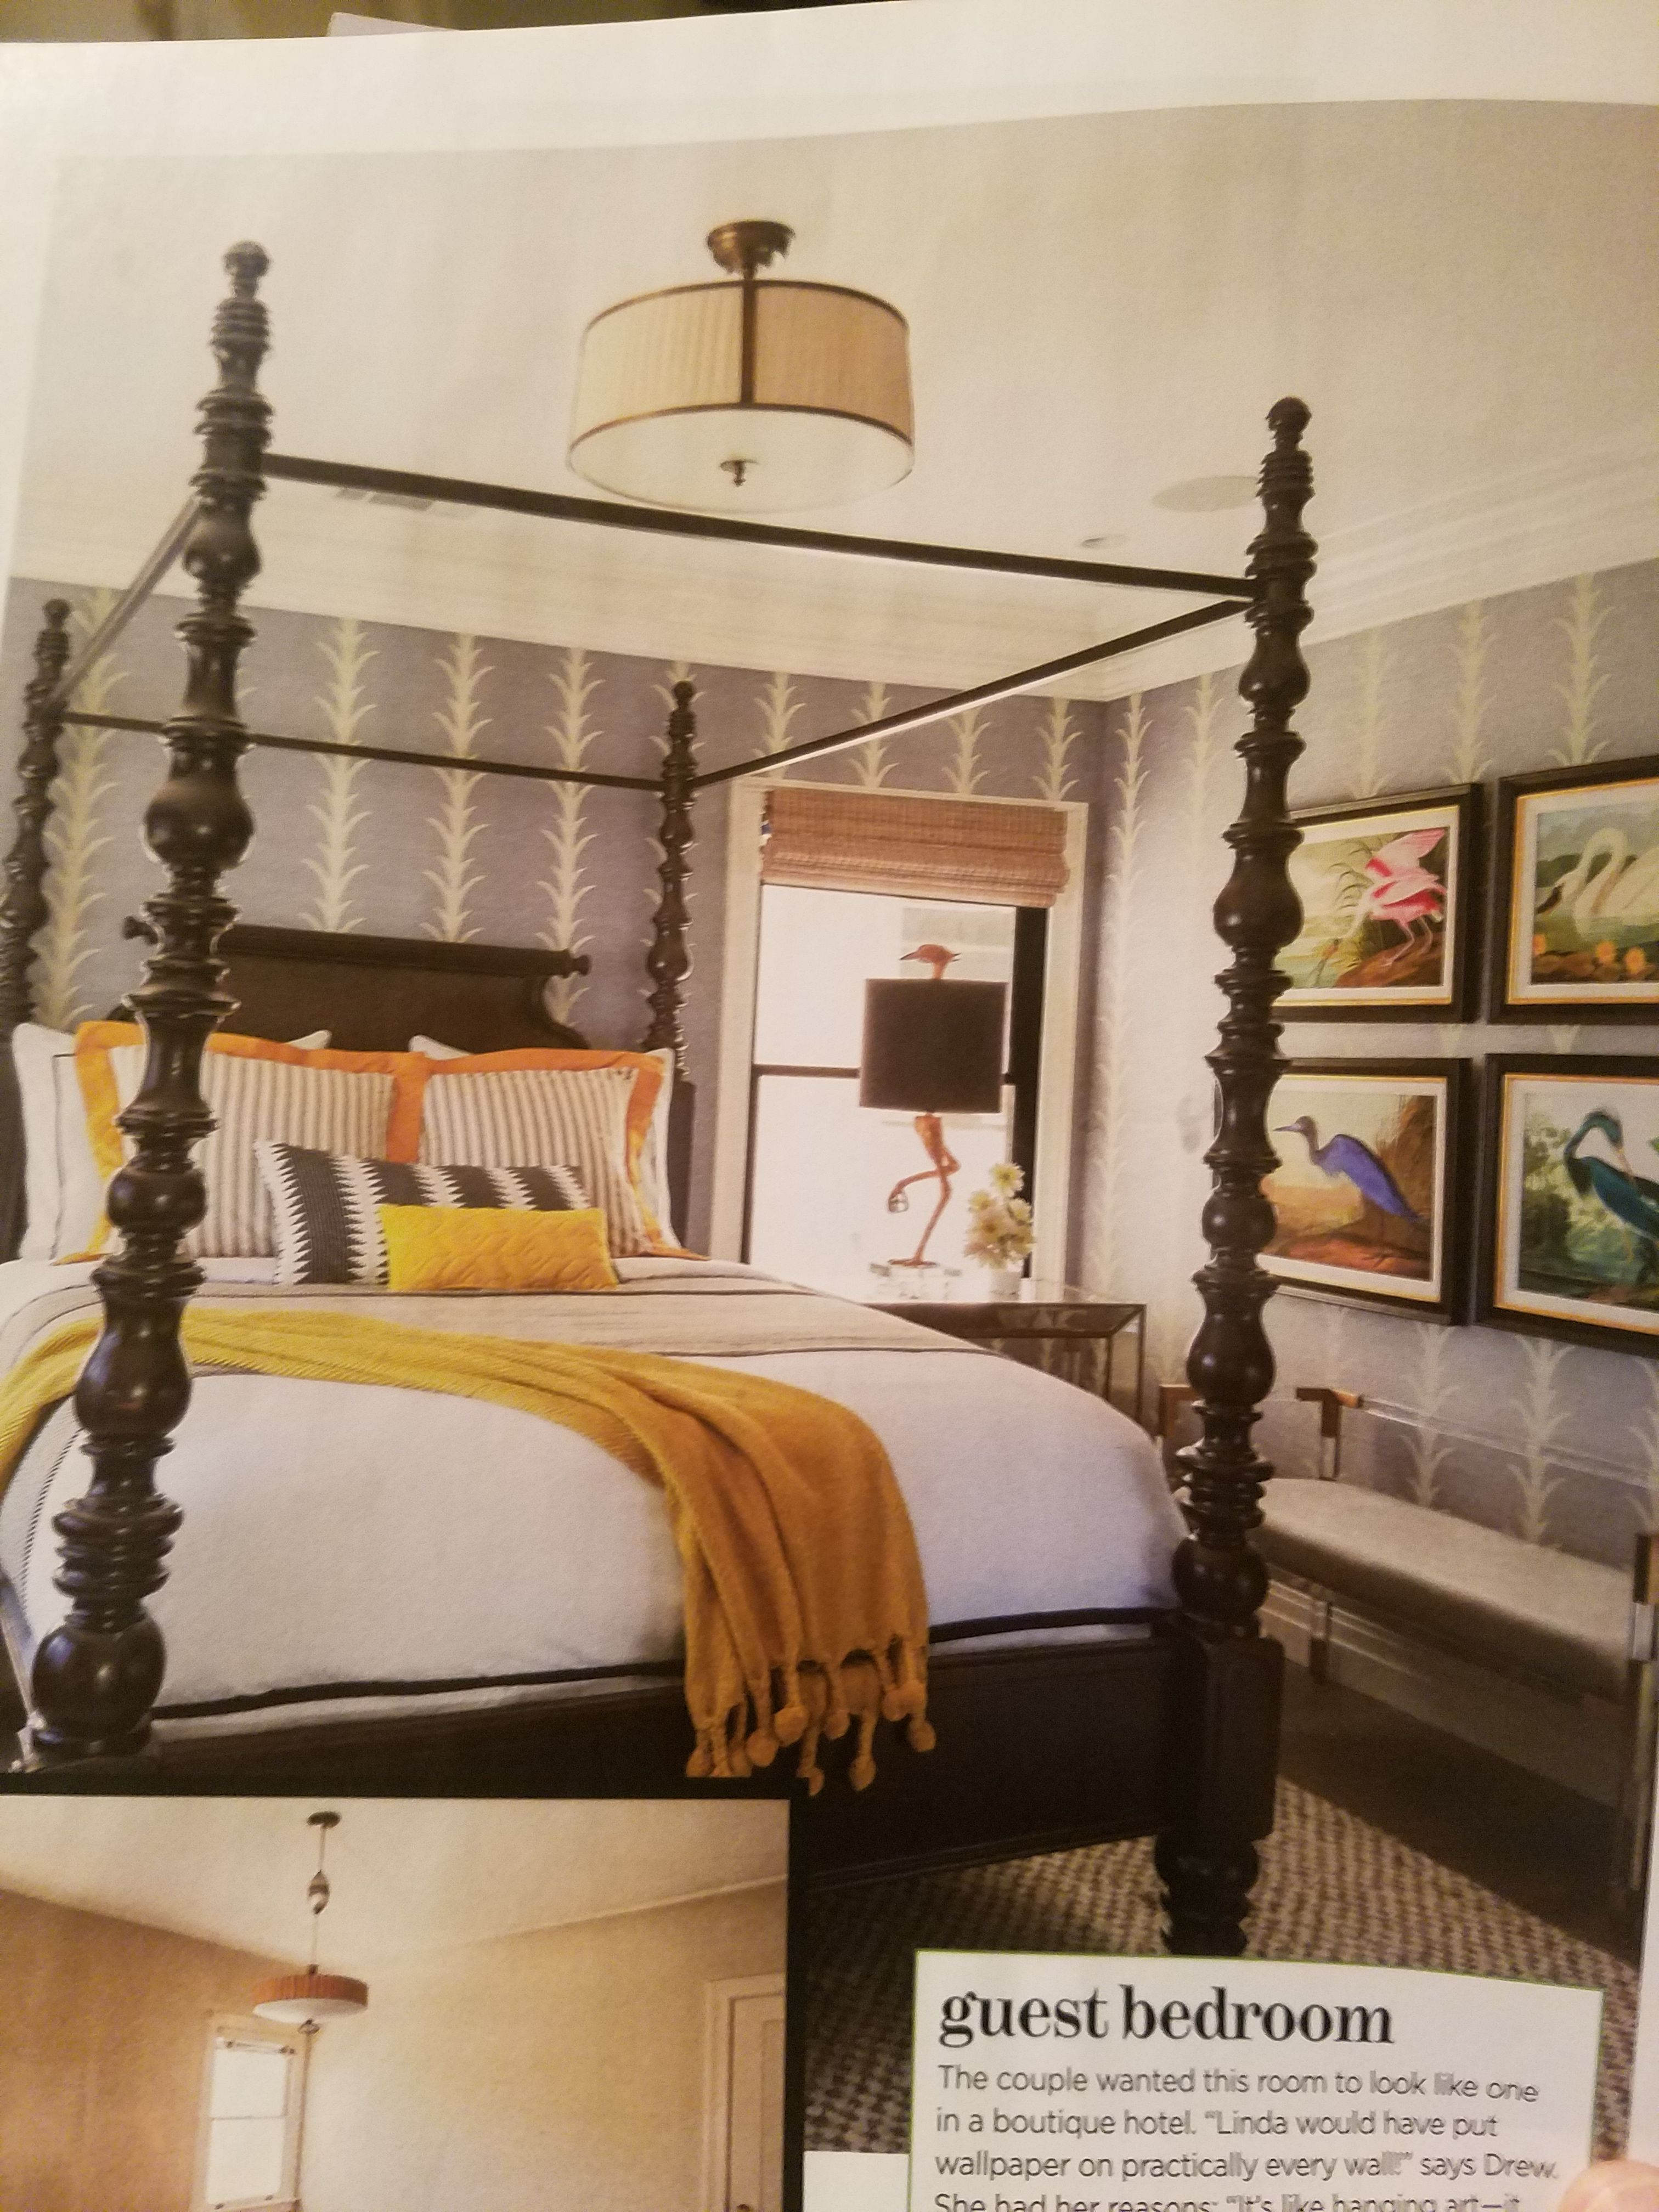 In The New HGTV Magazine    Drew Scott Used This Tommy Bahama Bed In A